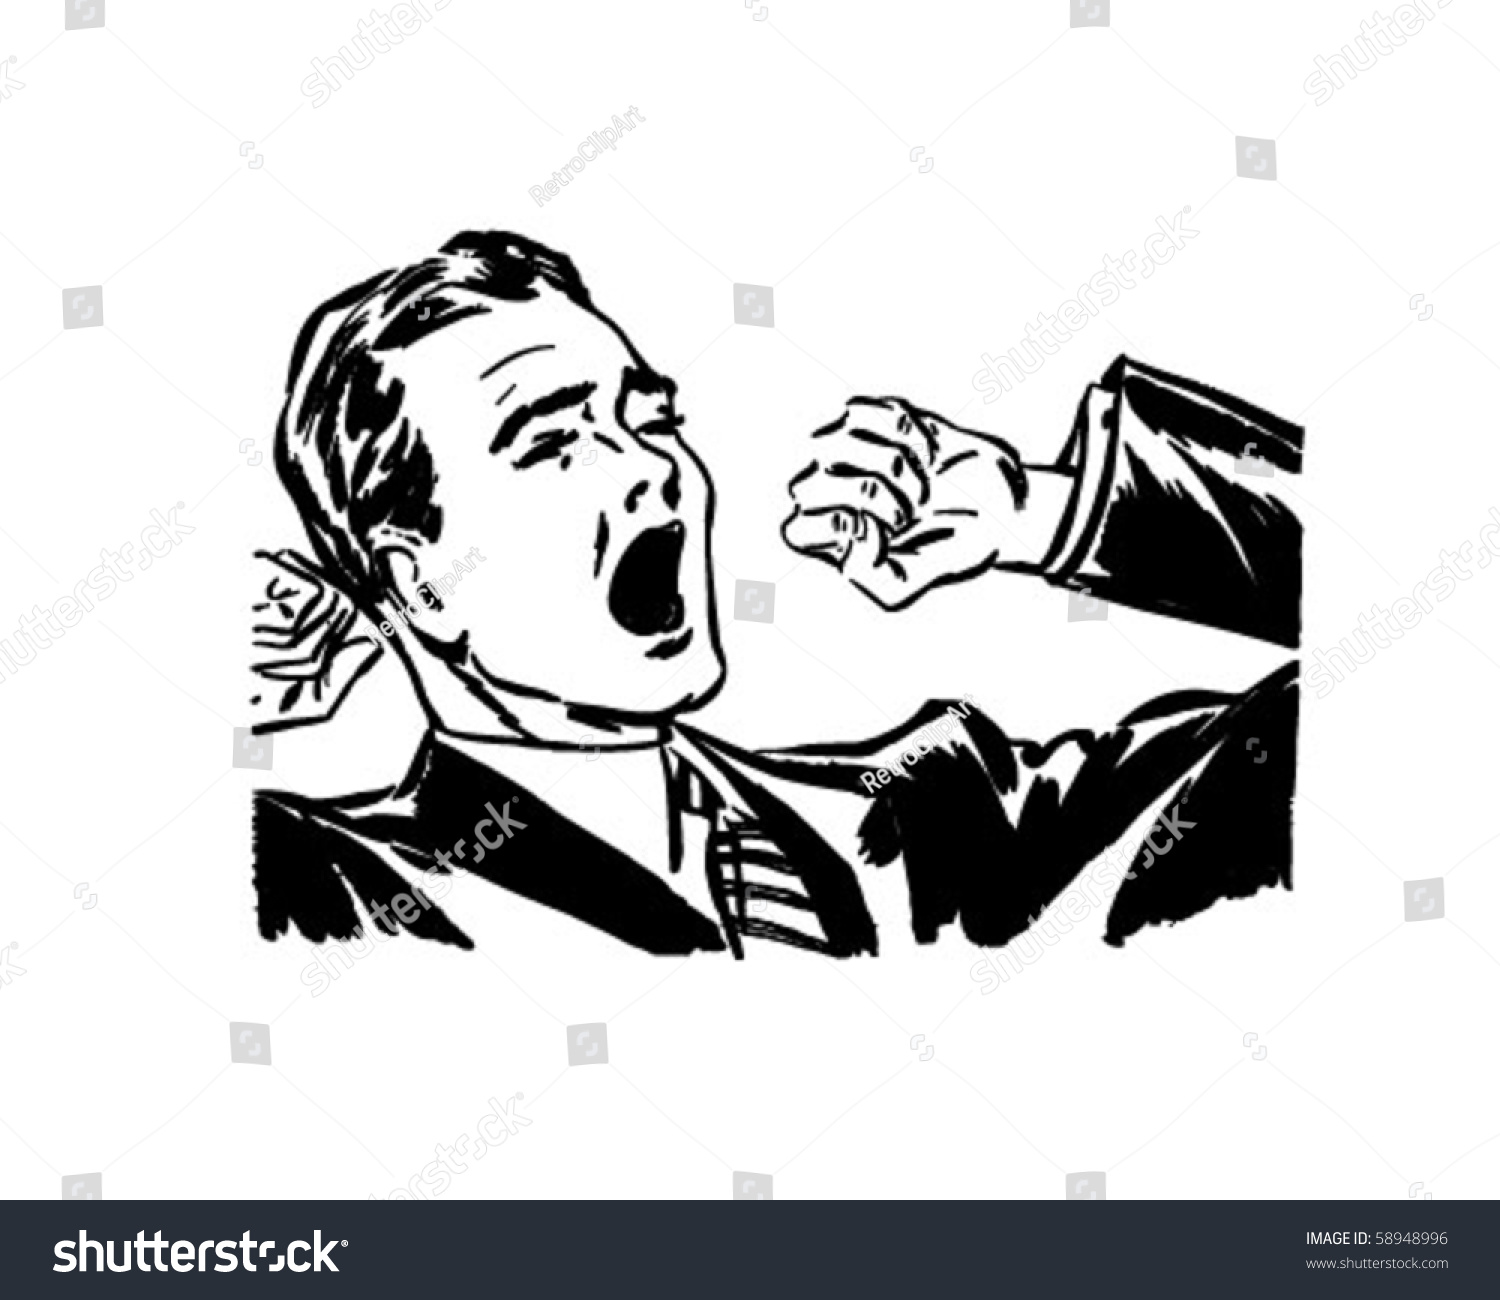 Yawning Stretching Retro Clip Art Stock Vector Royalty Free 58948996